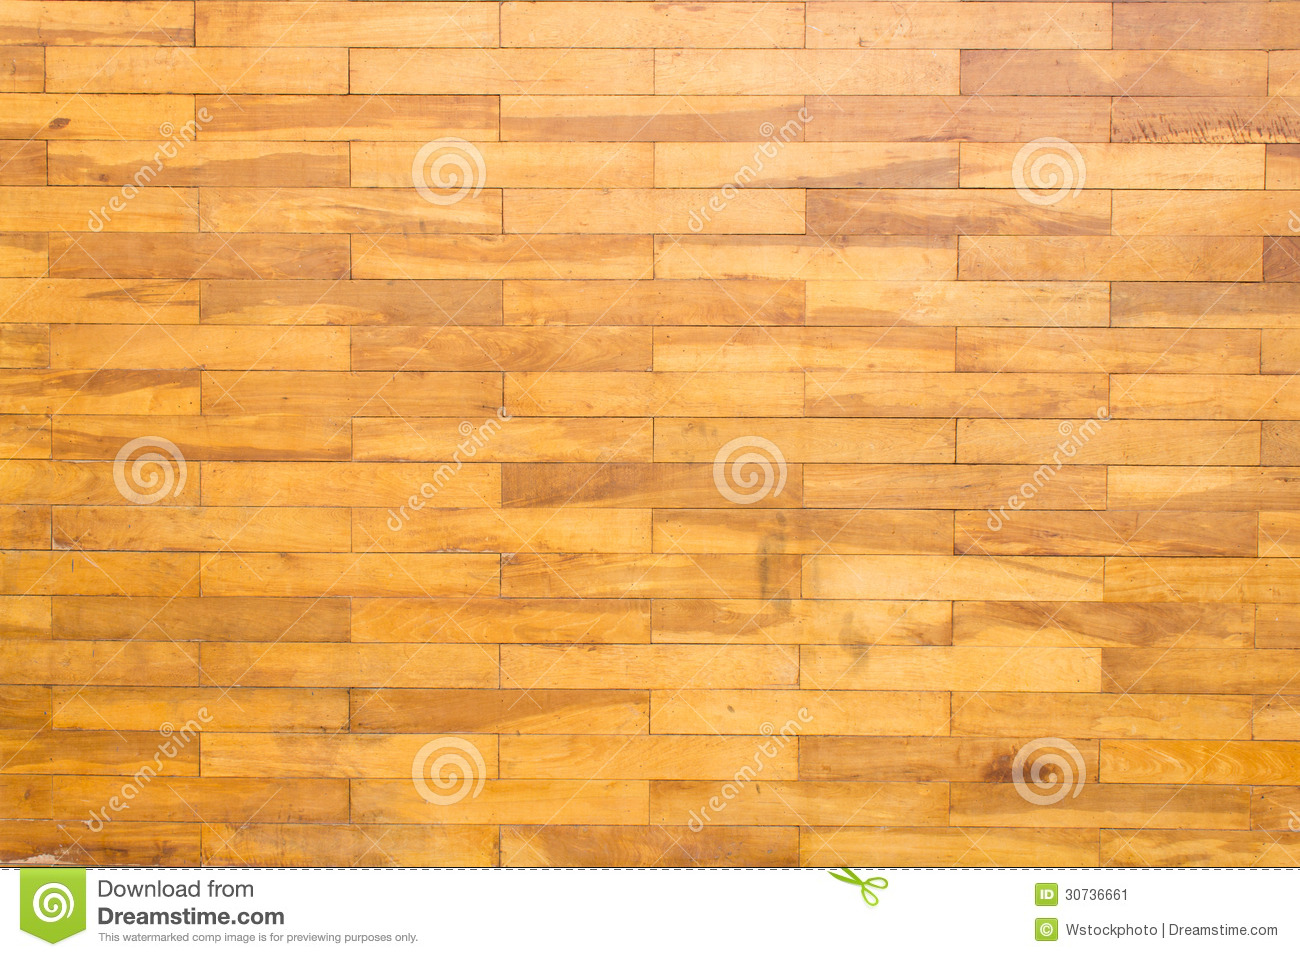 Wood block wall texture stock image. Image of pattern - 30736661